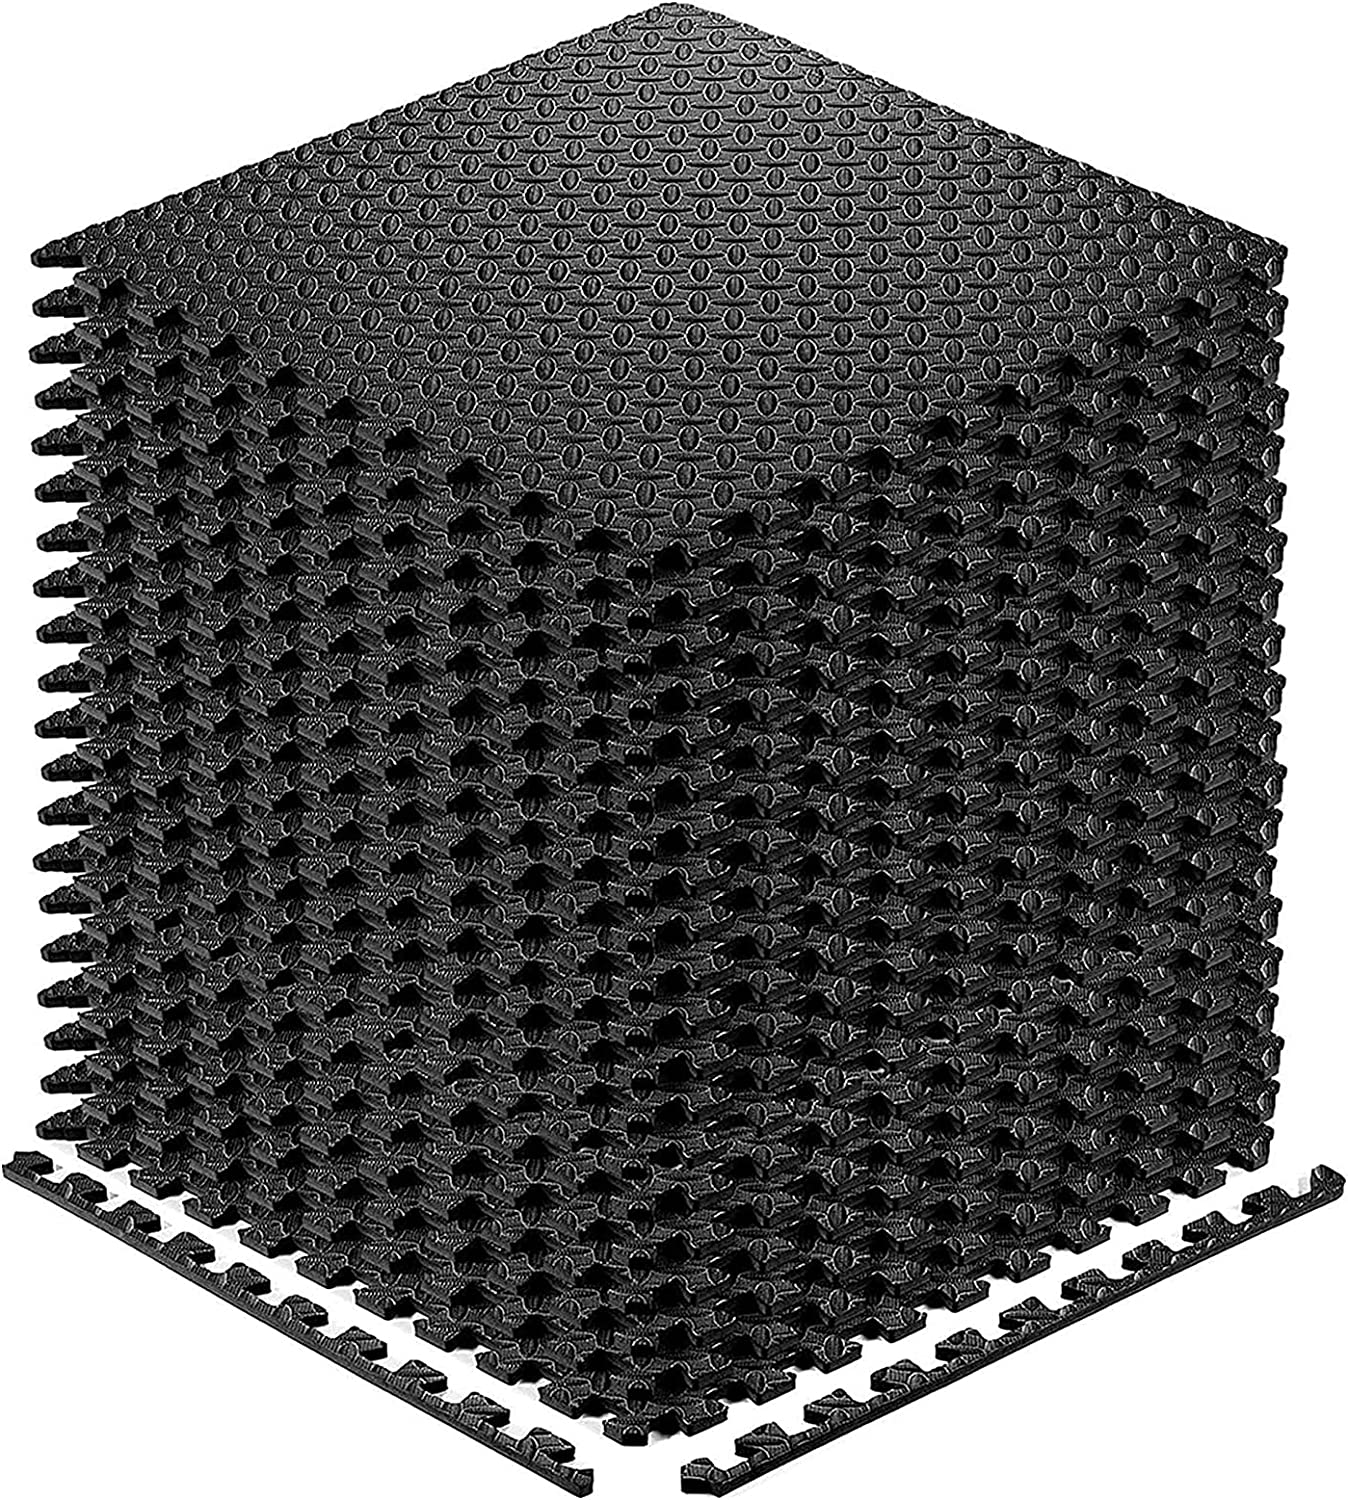 Puzzle Exercise Floor Mat, EVA Interlocking Foam Tiles Exercise Equipment Mat Workout Mats flooring for Home Gym 20 Square Feet Gym Floor Mats for Gyms, Yoga, Workout